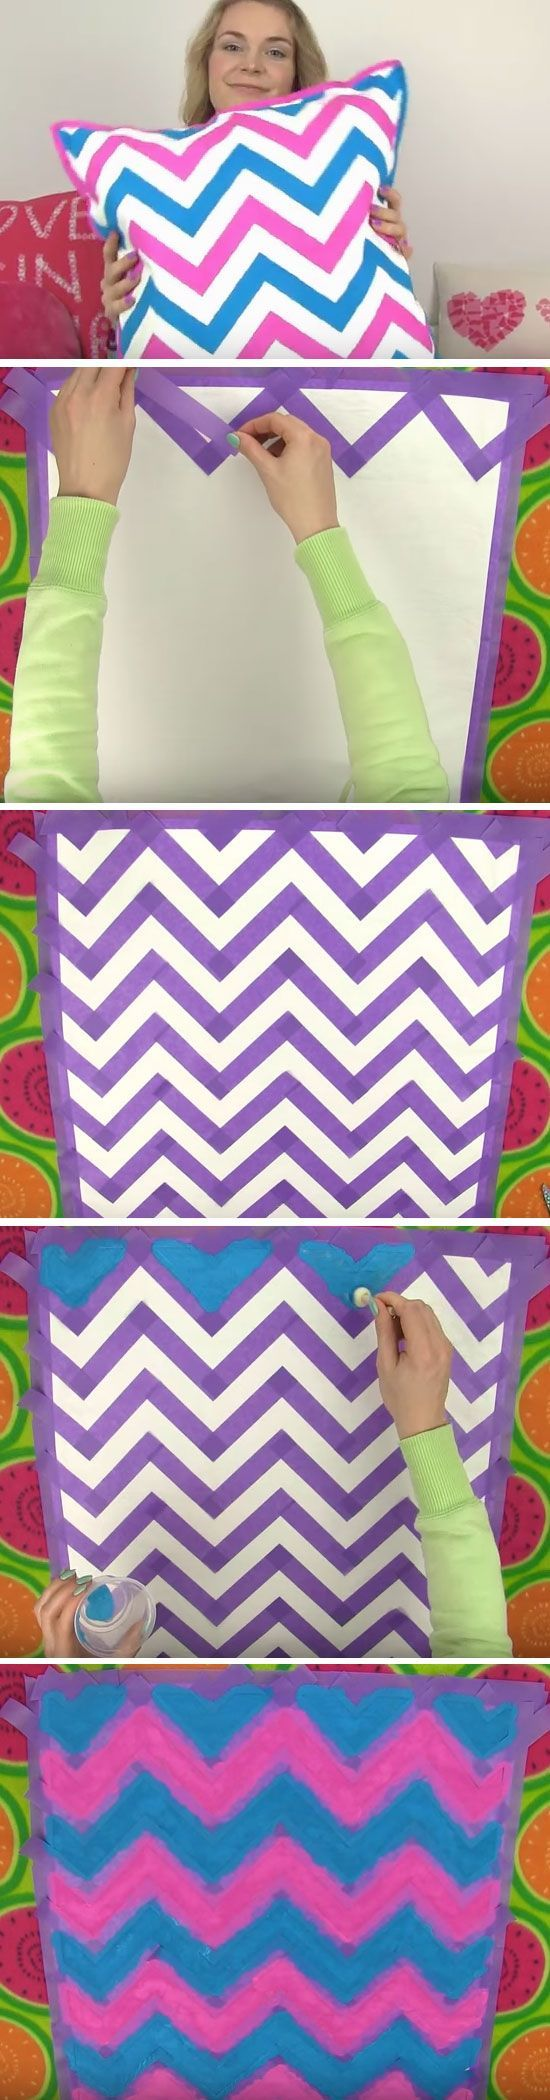 Chevron Cushion | Cool DIY Projects for Teen Girls Bedrooms